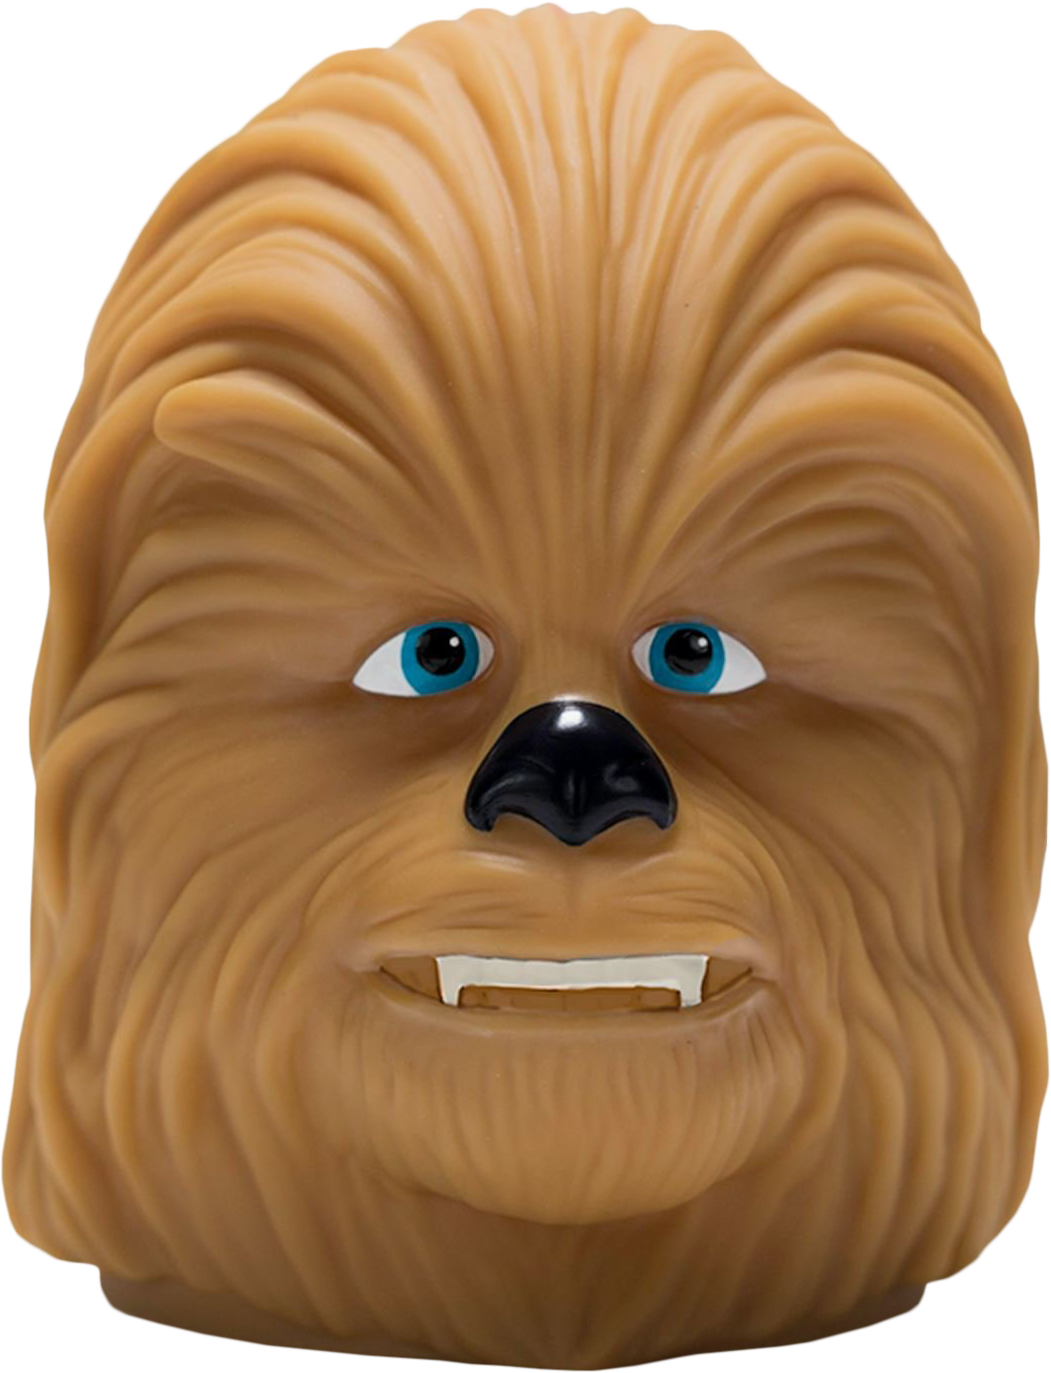 Chewbacca head png. Star wars colour changing